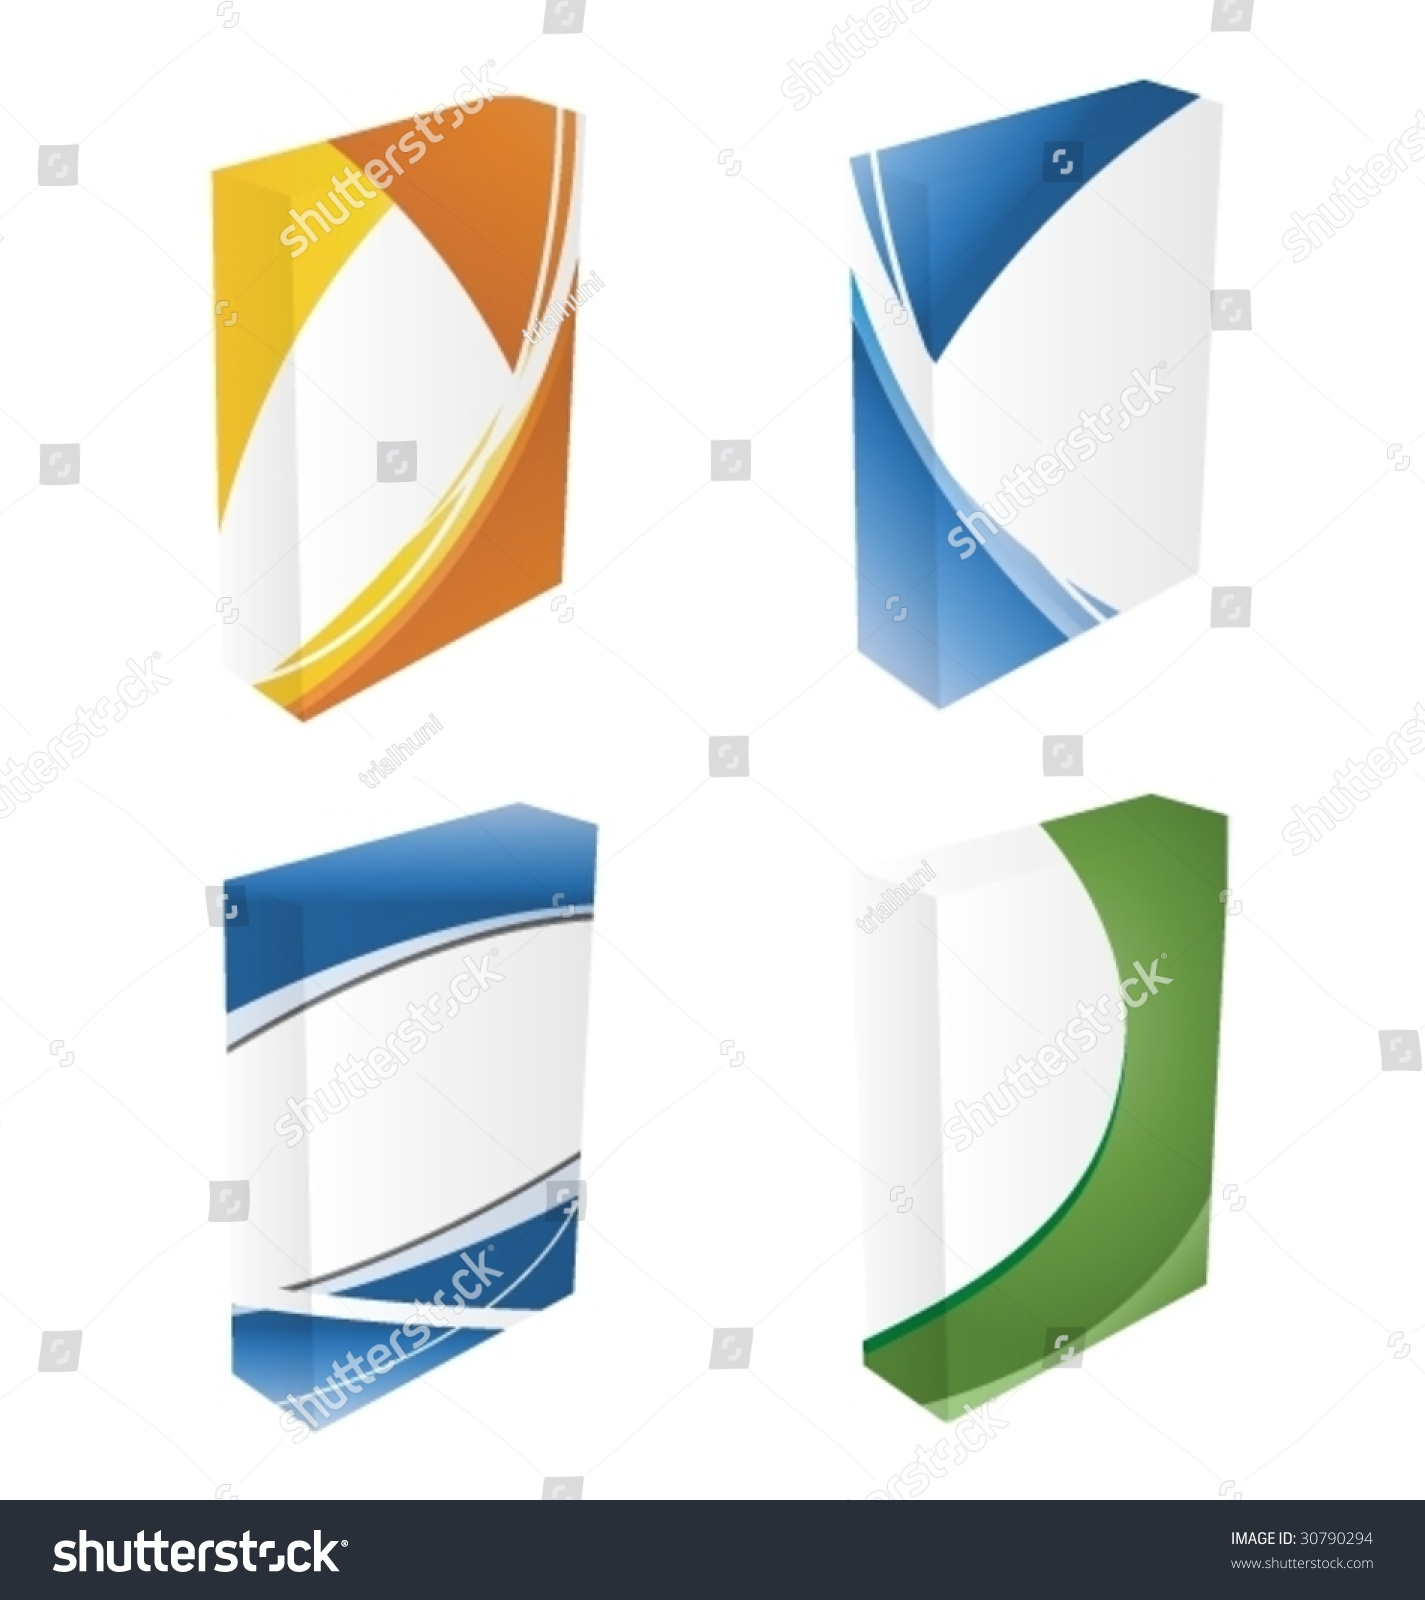 3d Wavy Software Boxes Vector 30790294 Shutterstock: vector image software